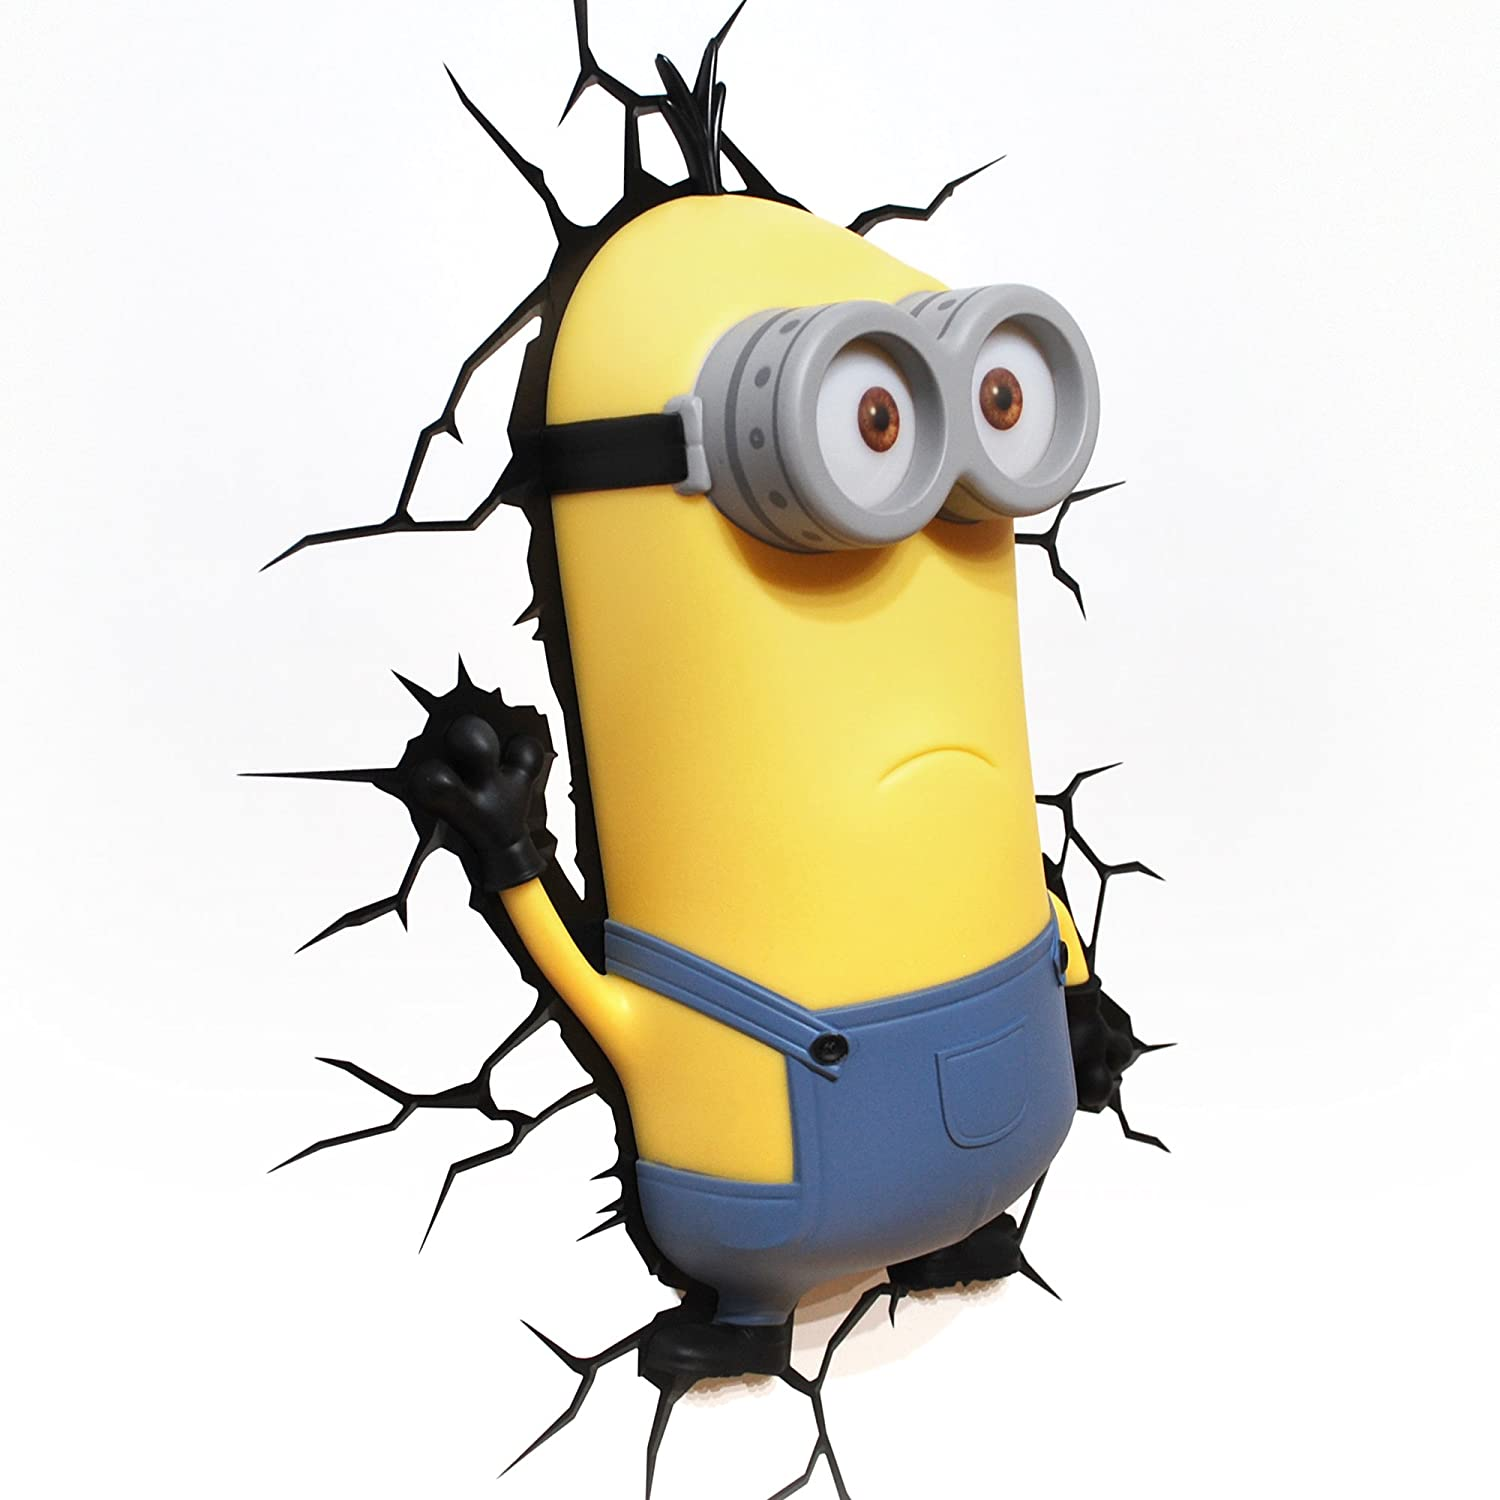 Amazon.com: 3DLightFX Minions Kevin 3D Deco Light: Toys & Games